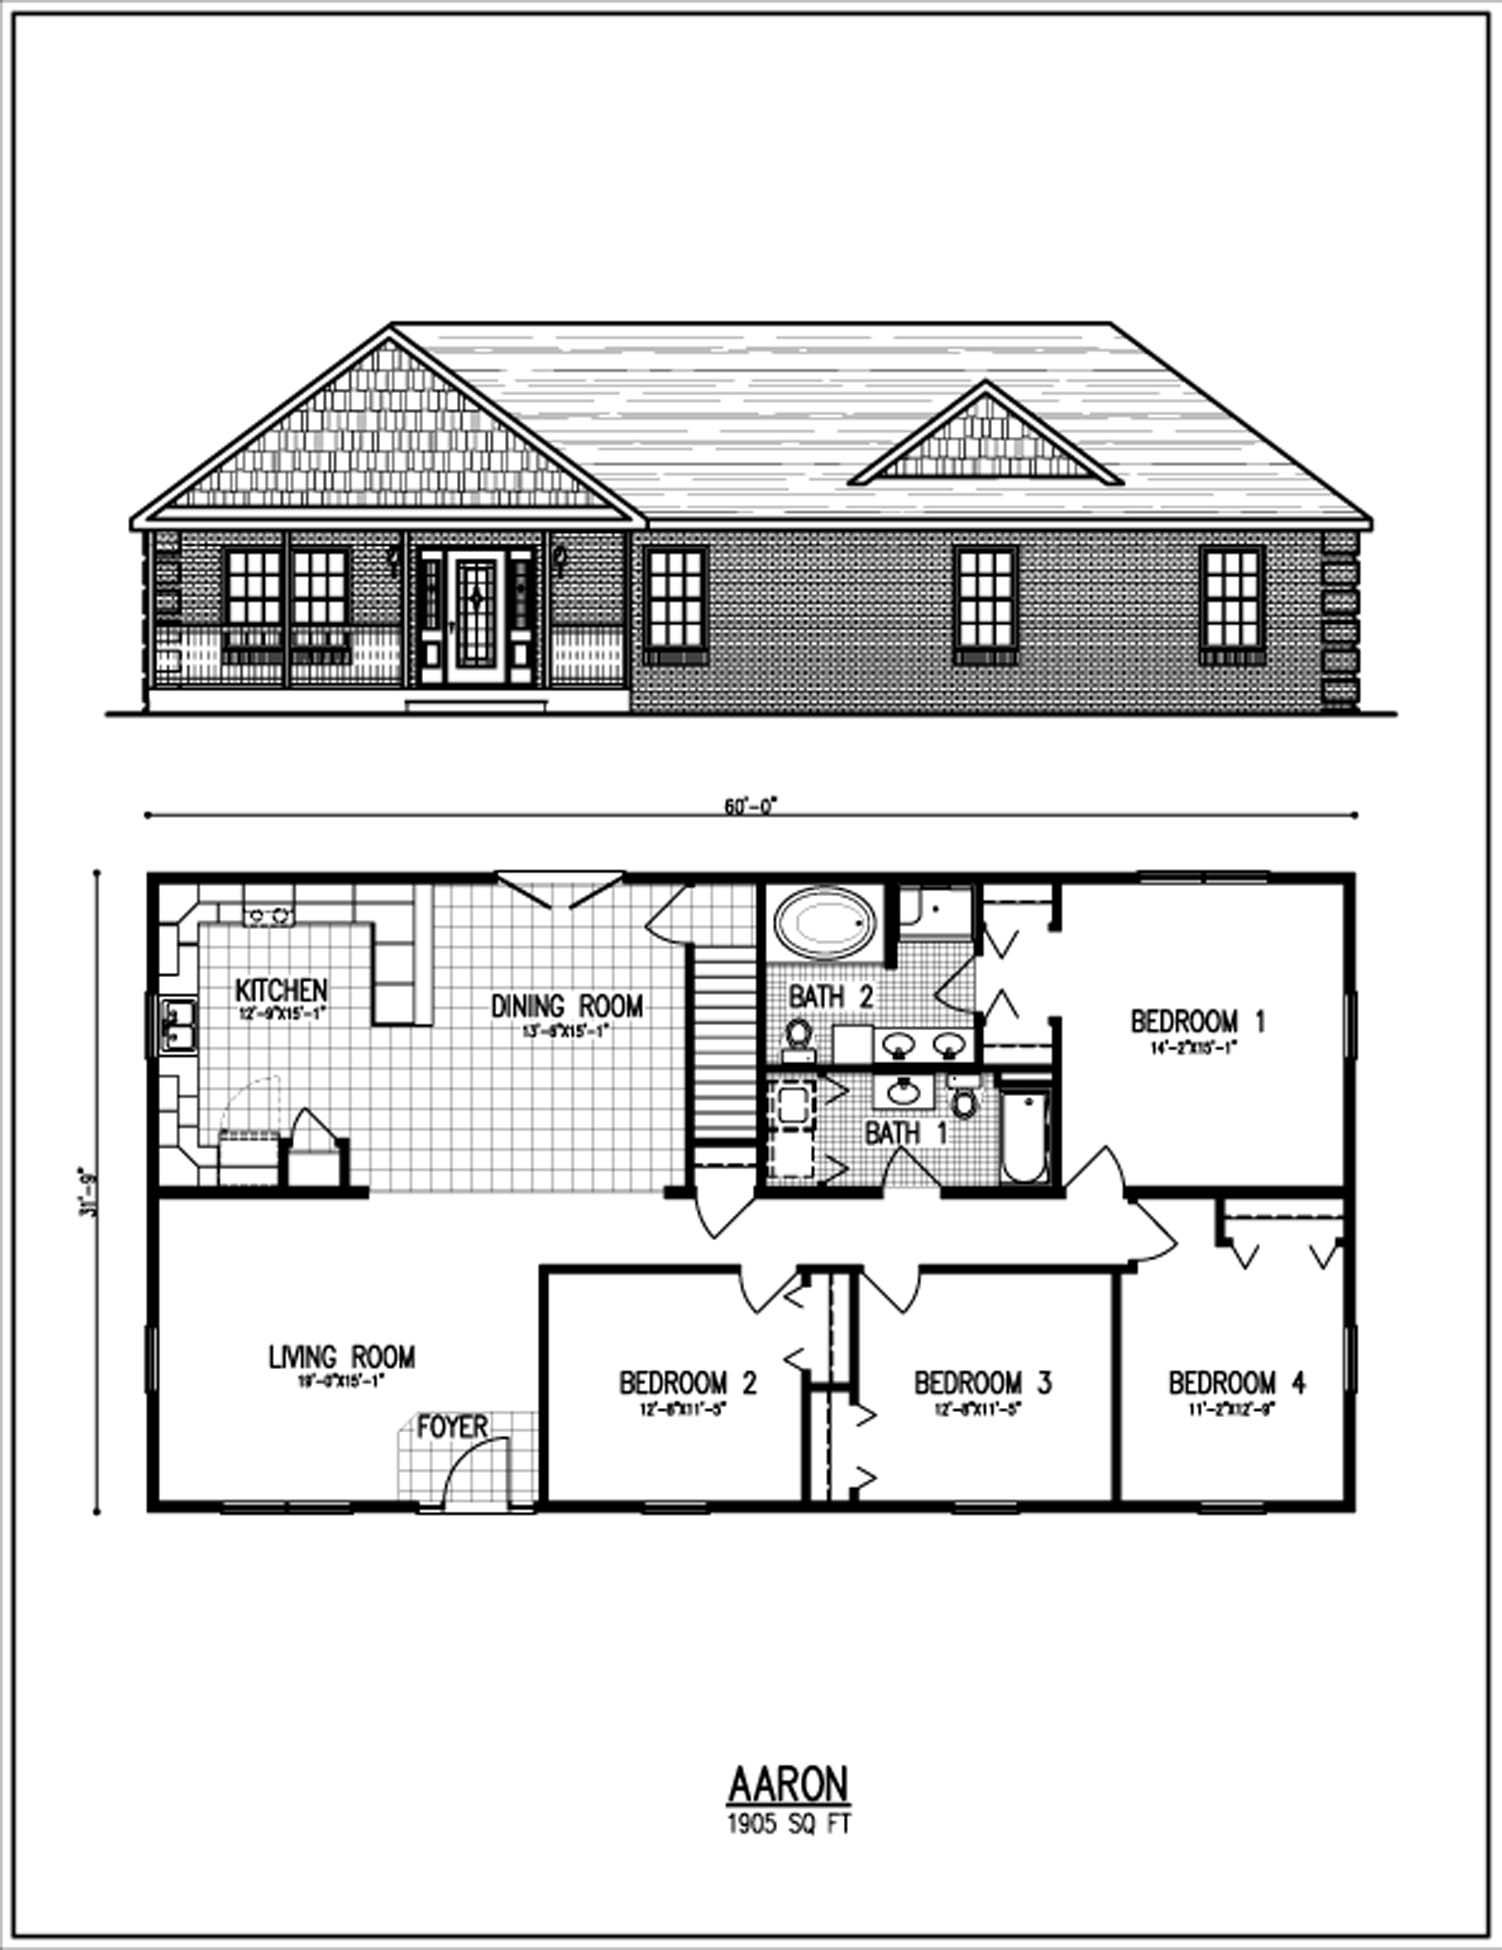 All american homes floorplan center staffordcape Ranch house floor plan